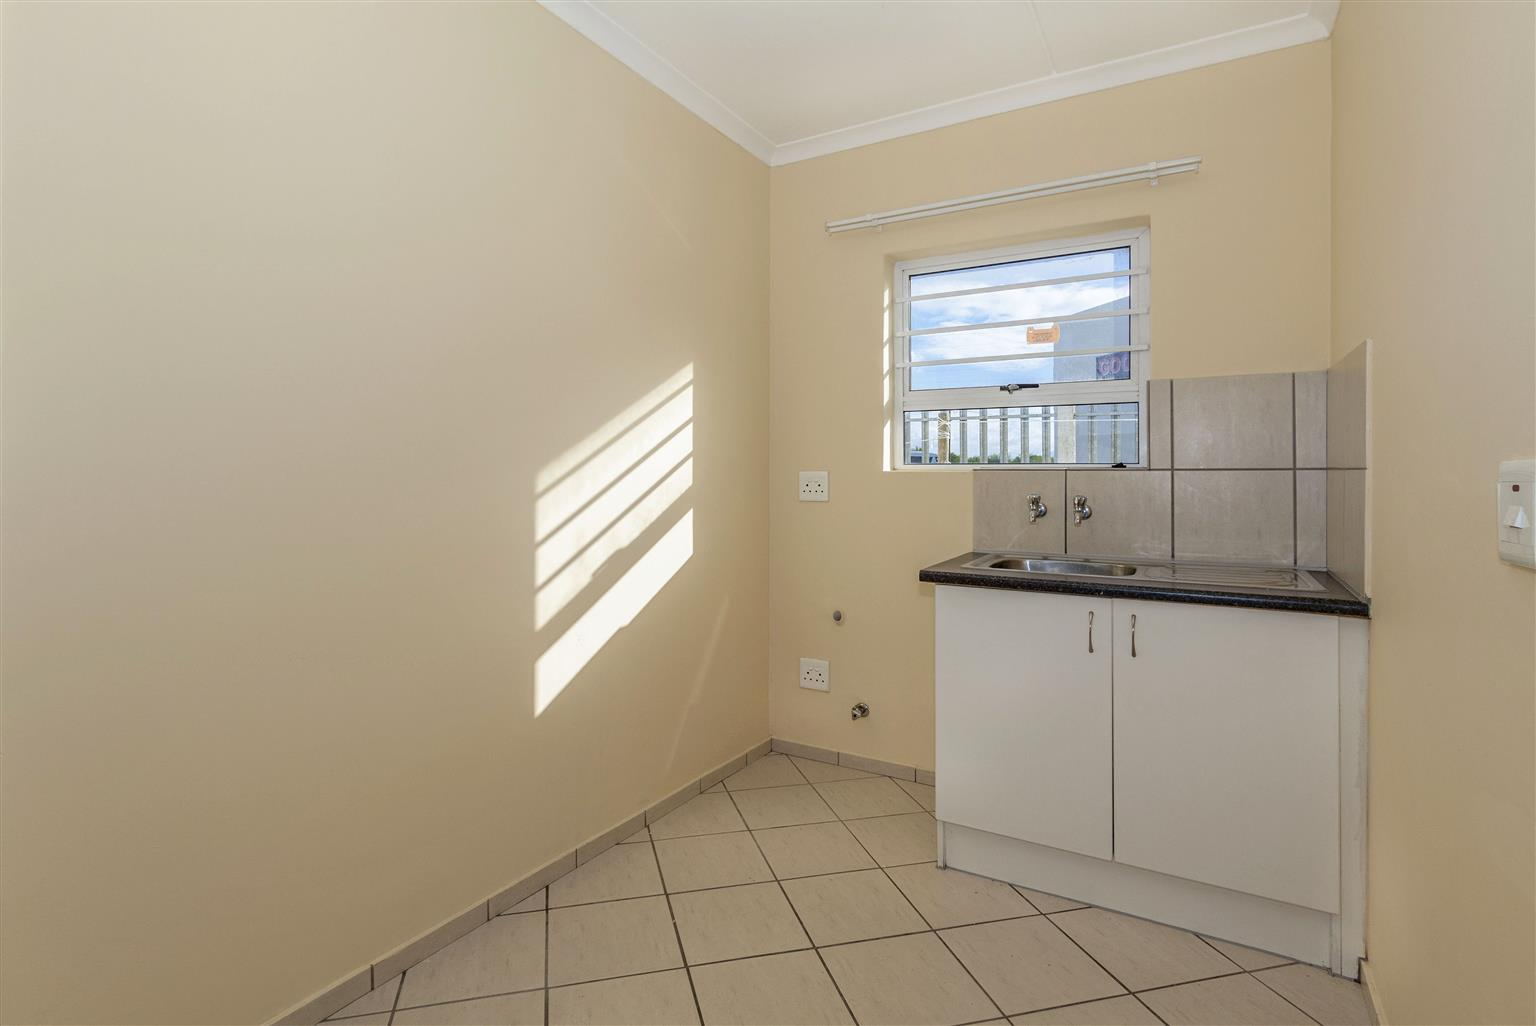 Special of ONE month deposit for 2 bedroom apartment, Jasmine Place, Bella Donna Estate